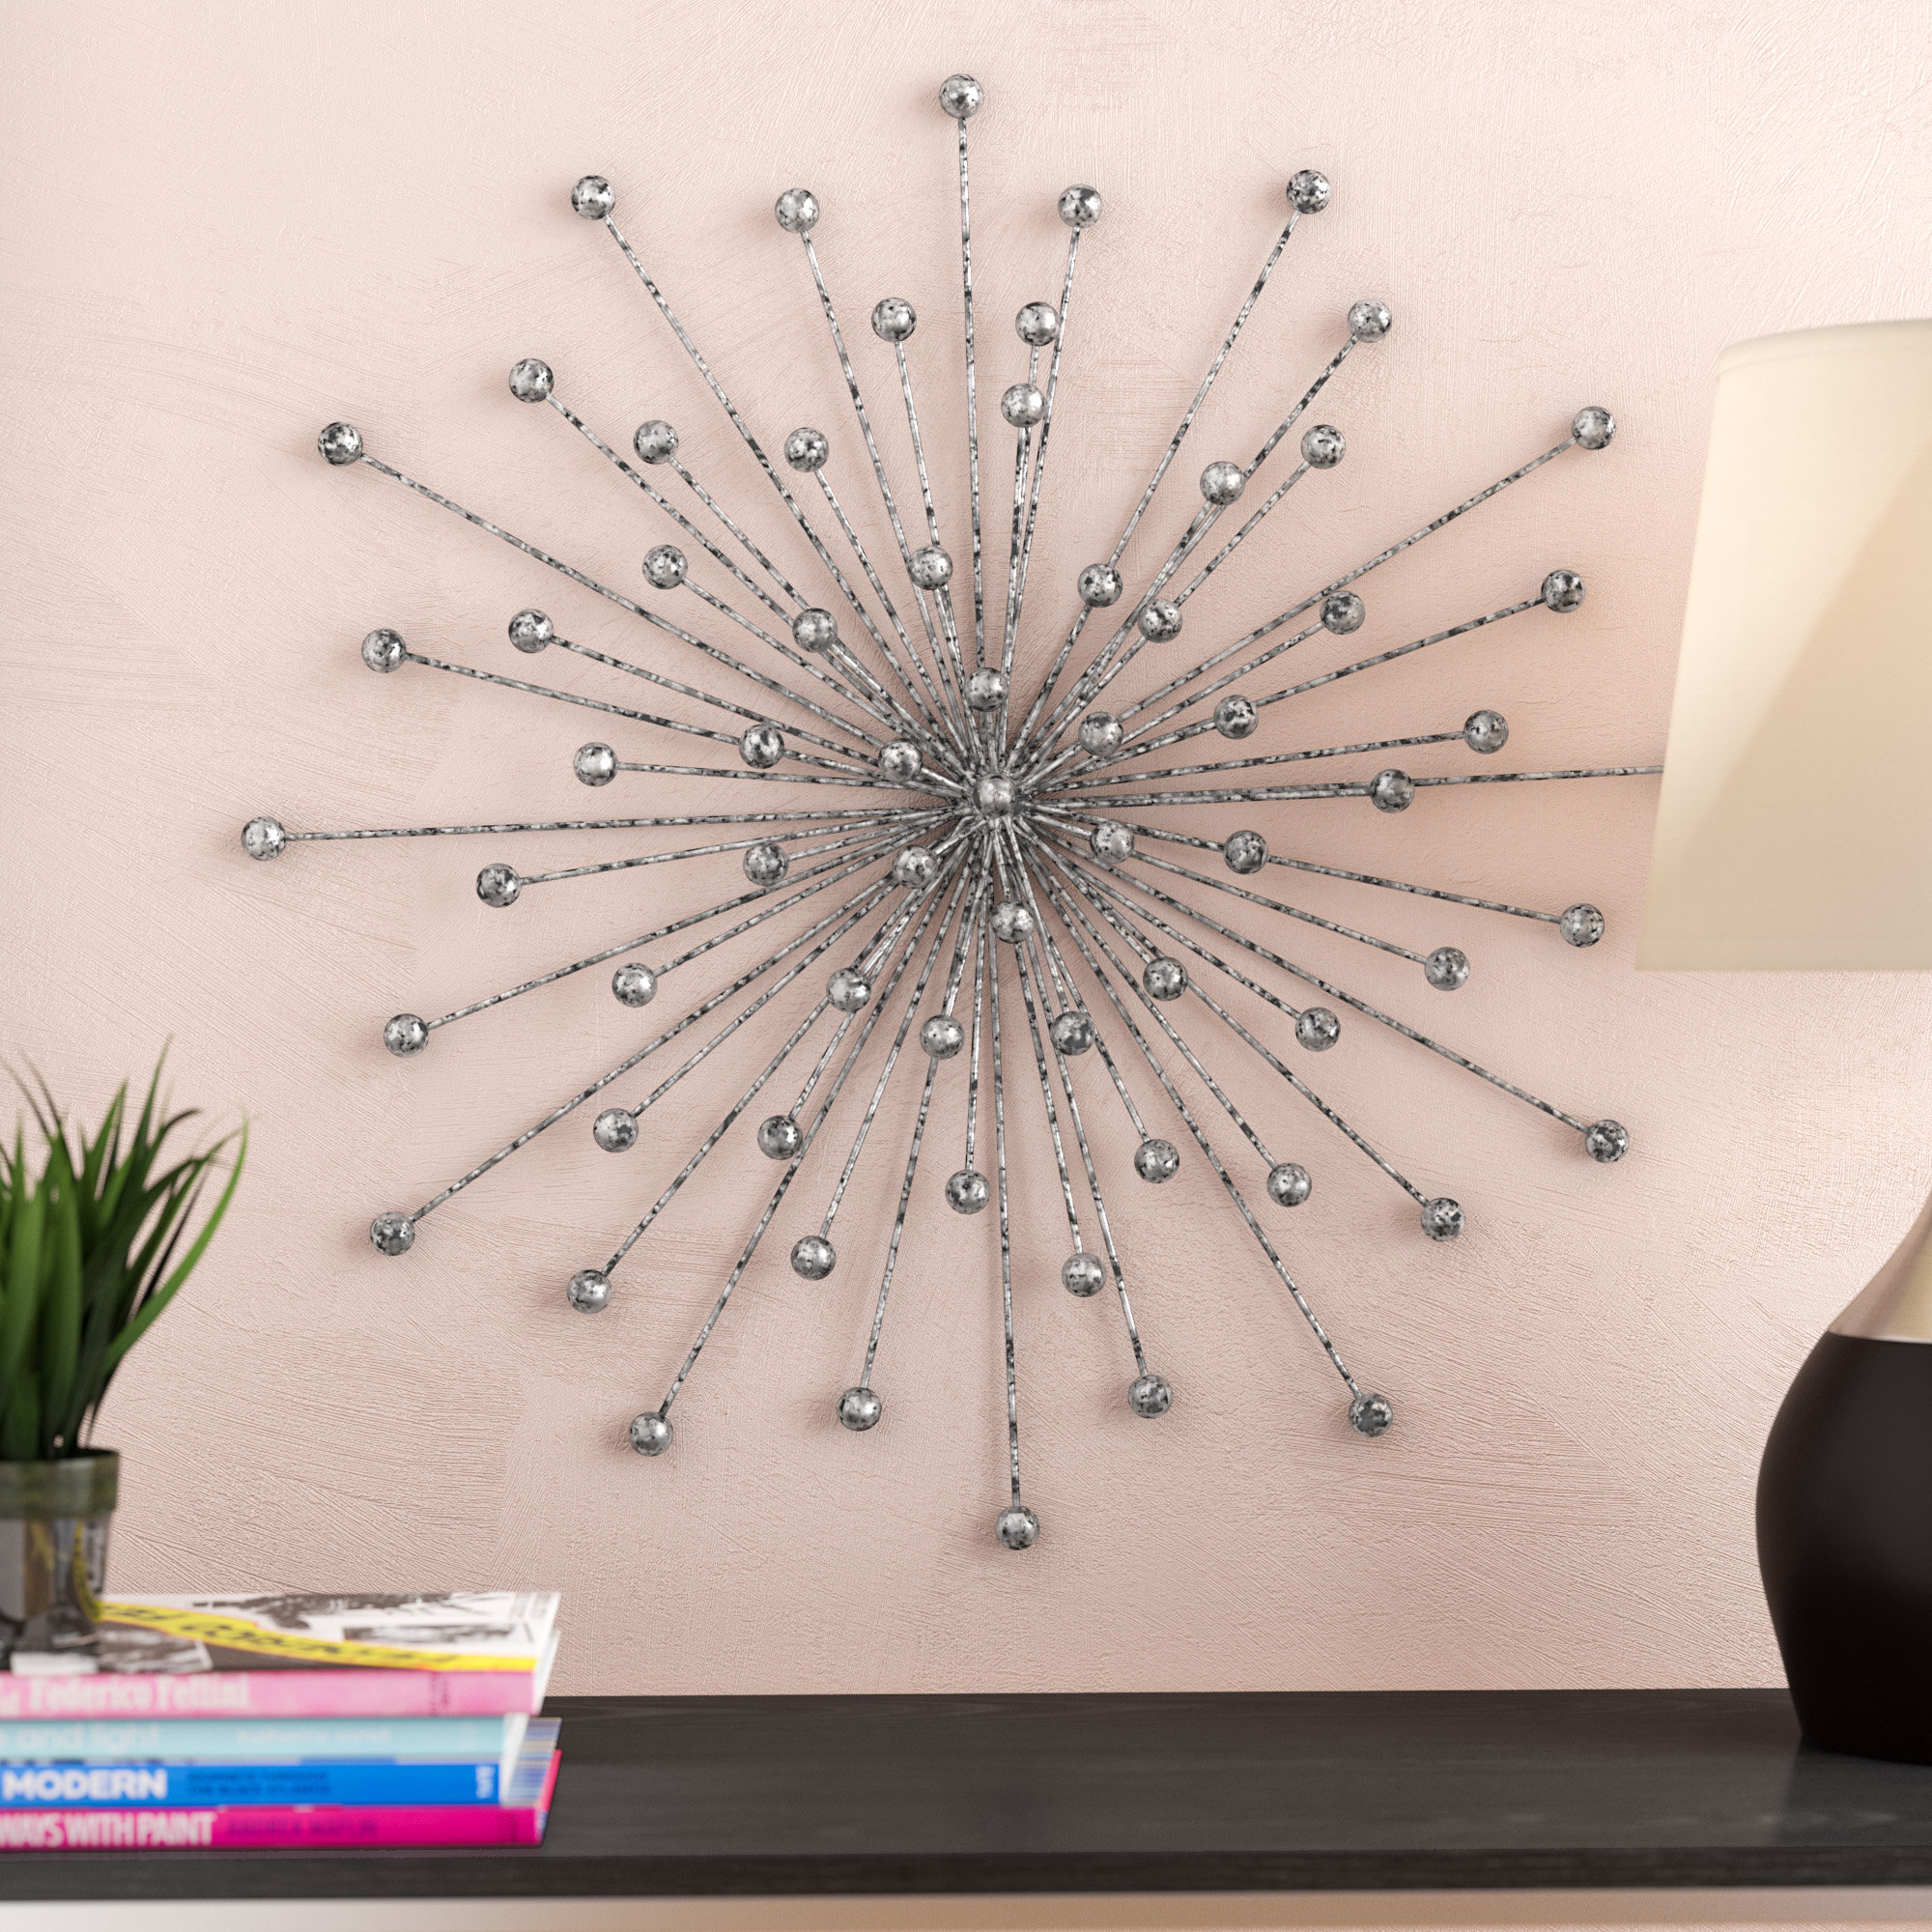 3 Piece Acrylic Burst Wall Decor Sets (Set Of 3) Throughout Preferred Wrought Studio Burst Wall Décor & Reviews (Gallery 18 of 20)